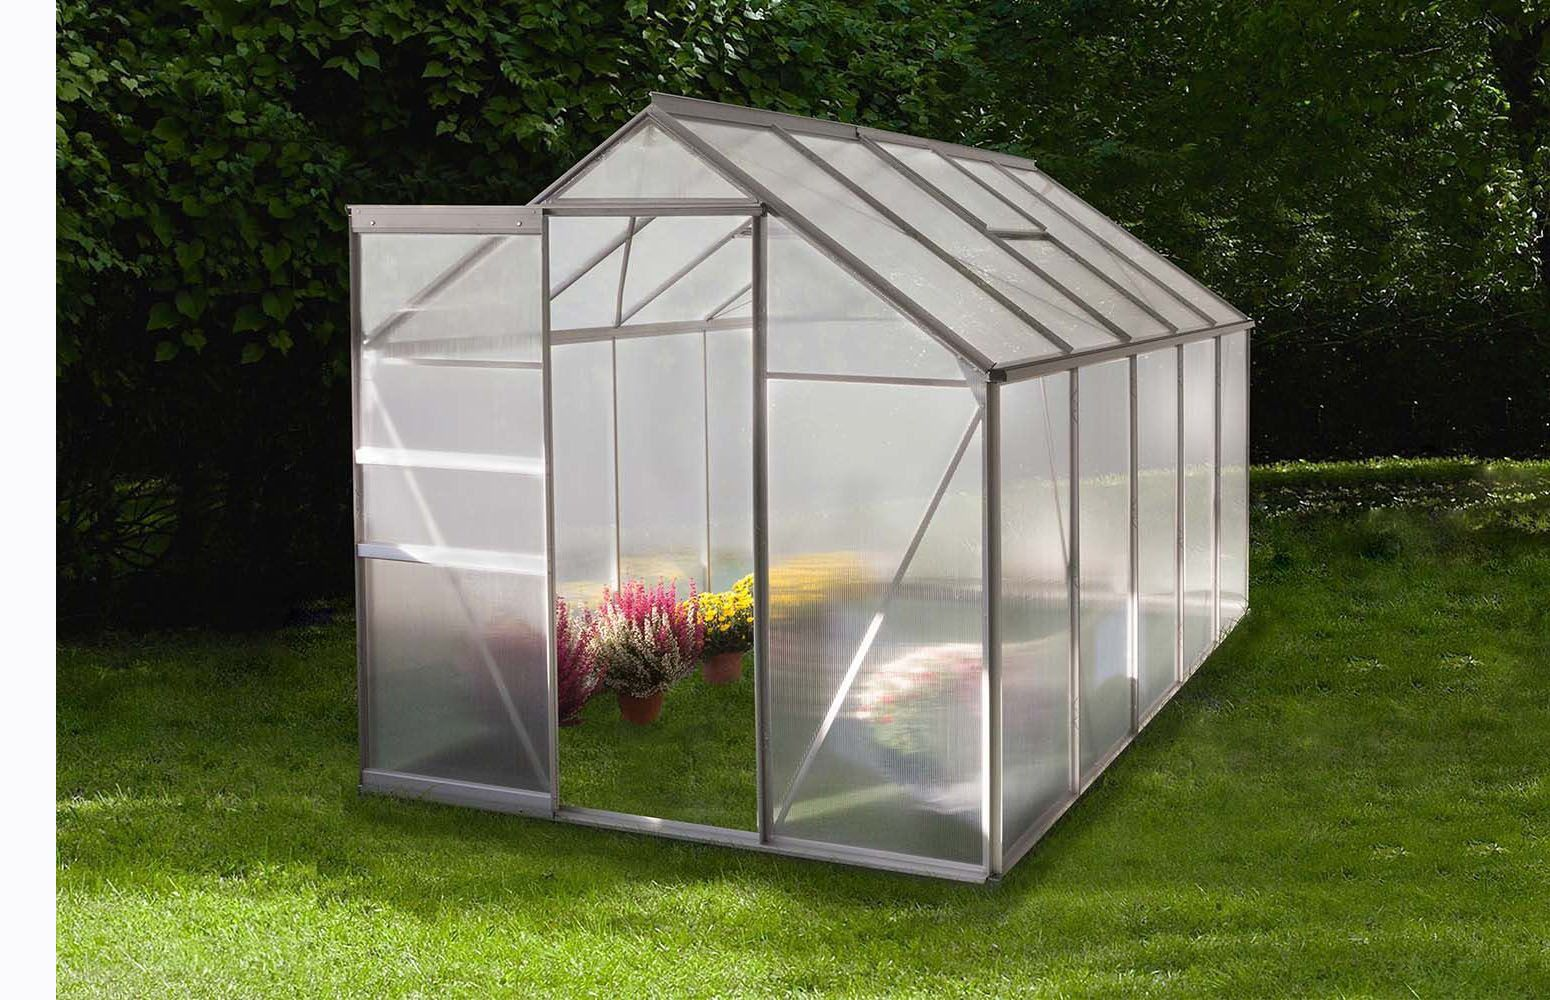 amenagement-jardin-serre-polycarbonate